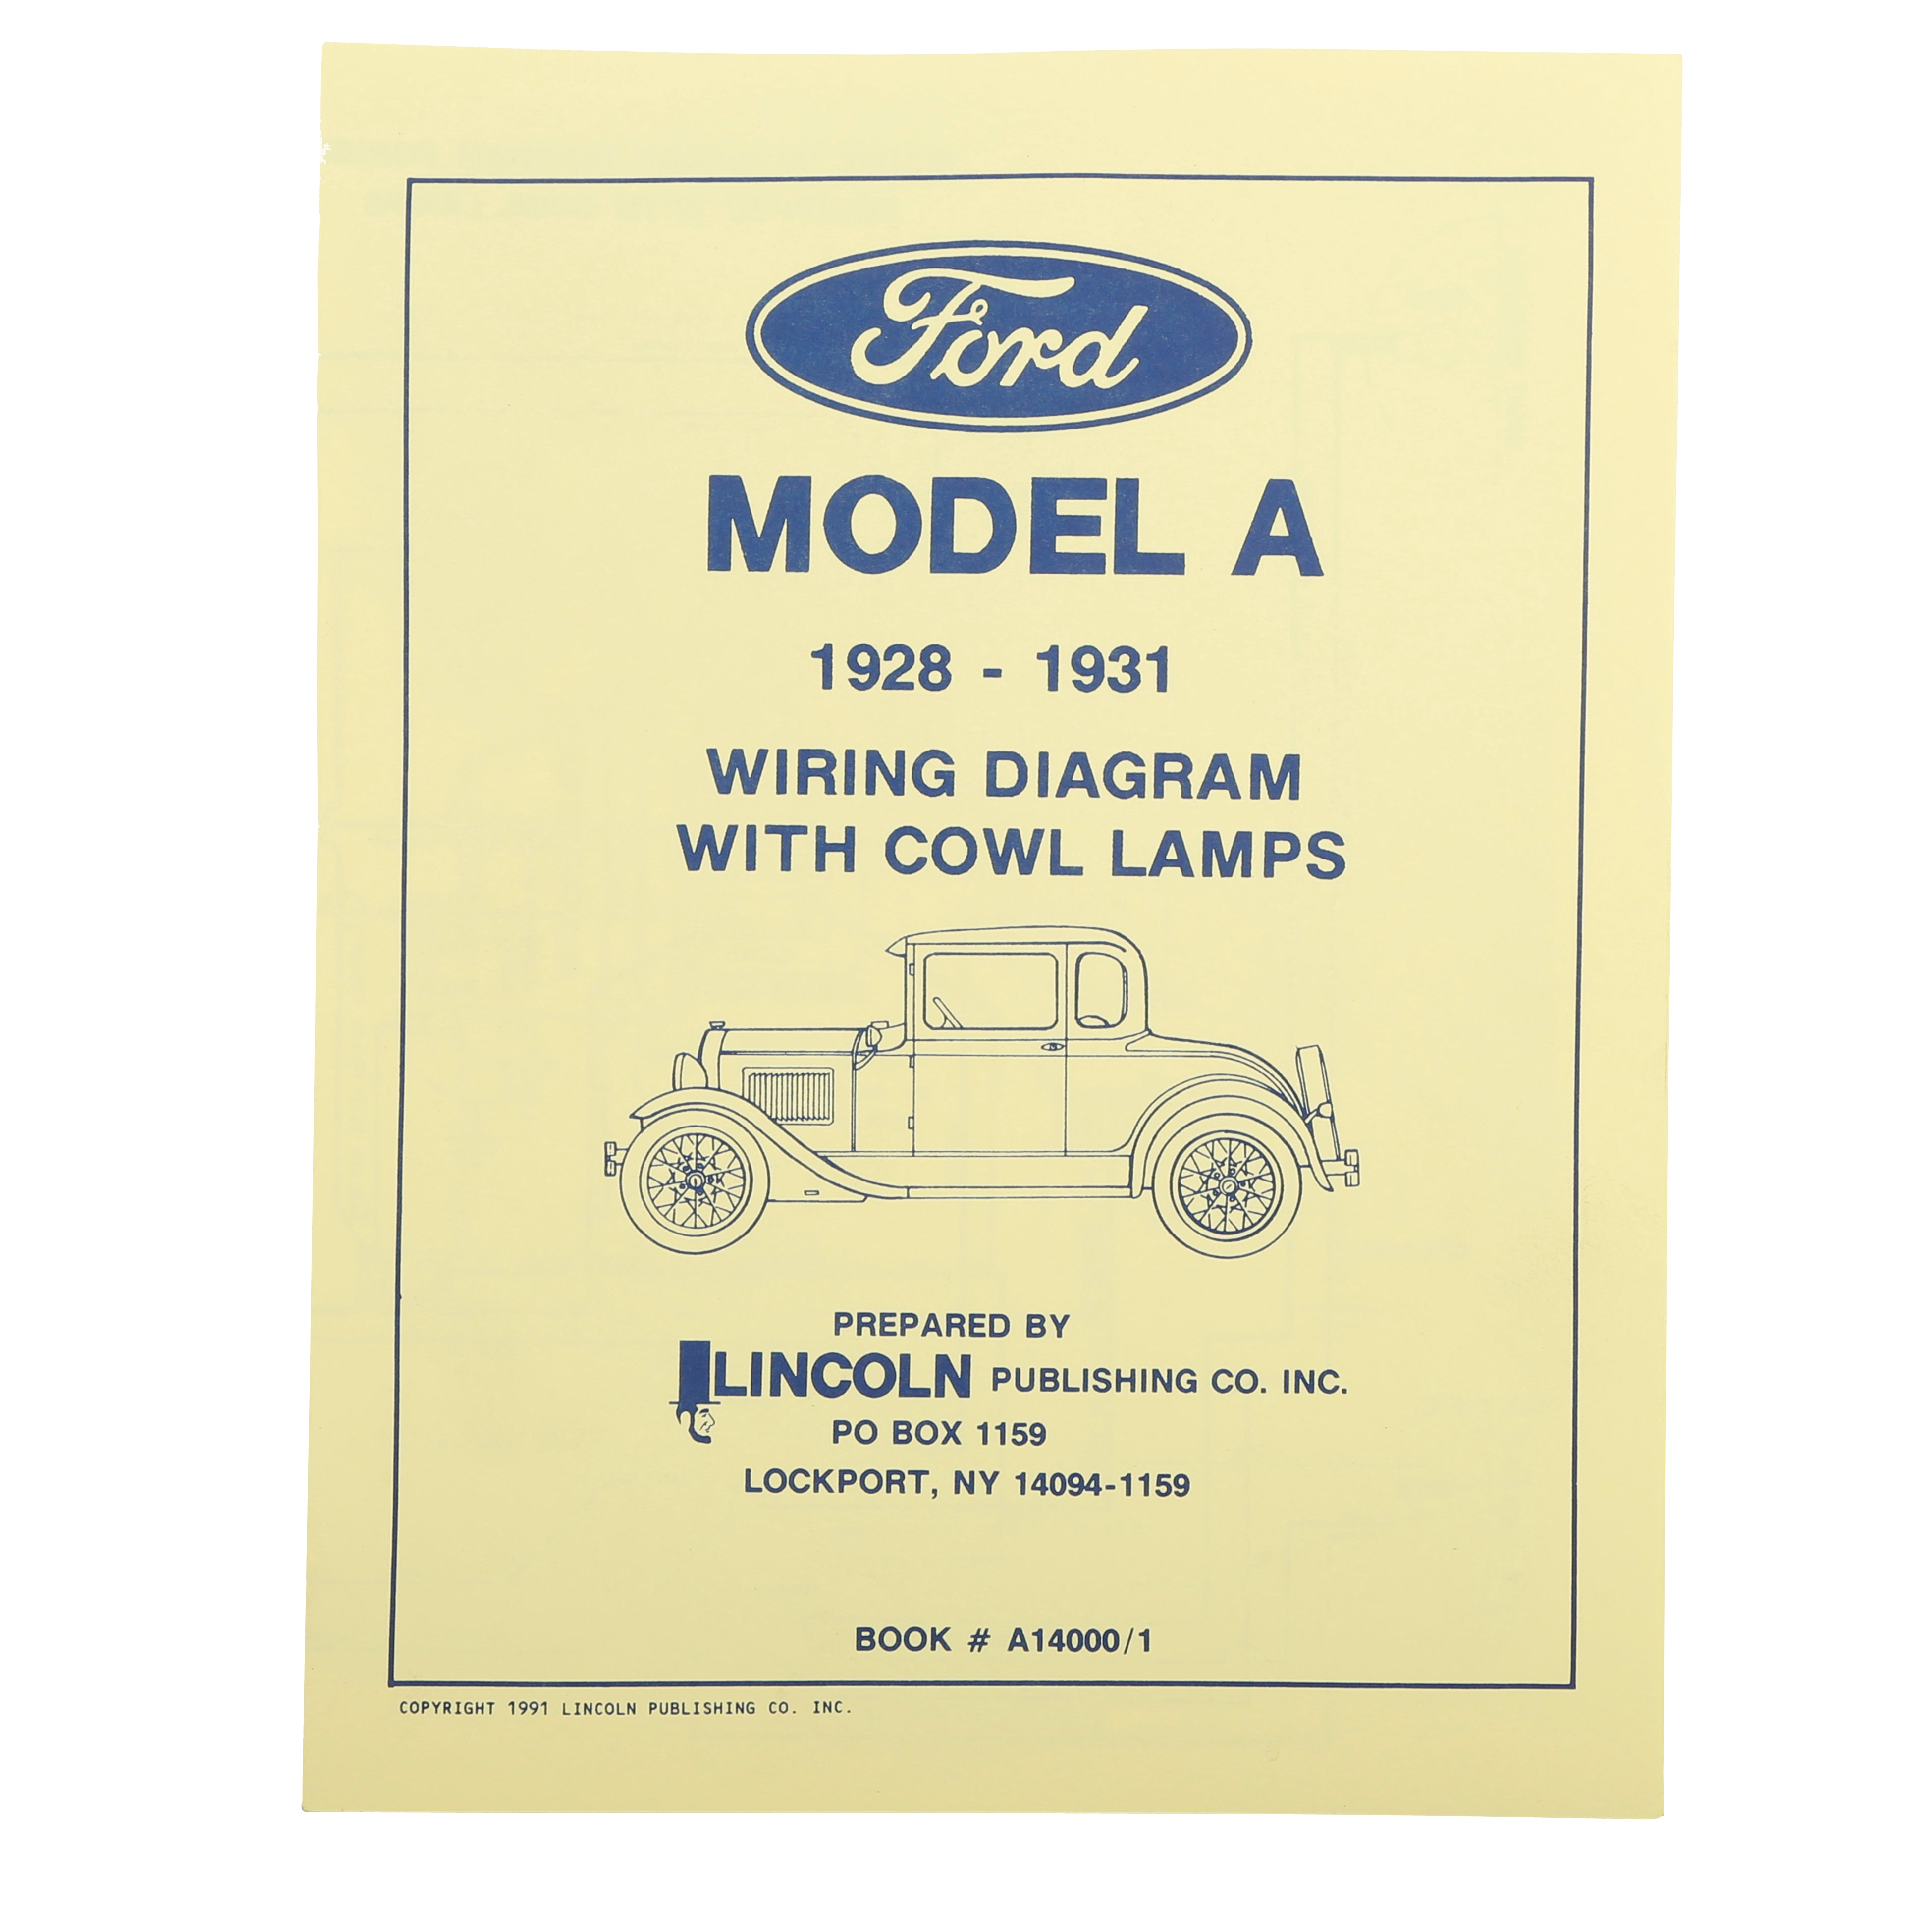 Model A Ford Wiring Diagram with Cowl Lamps